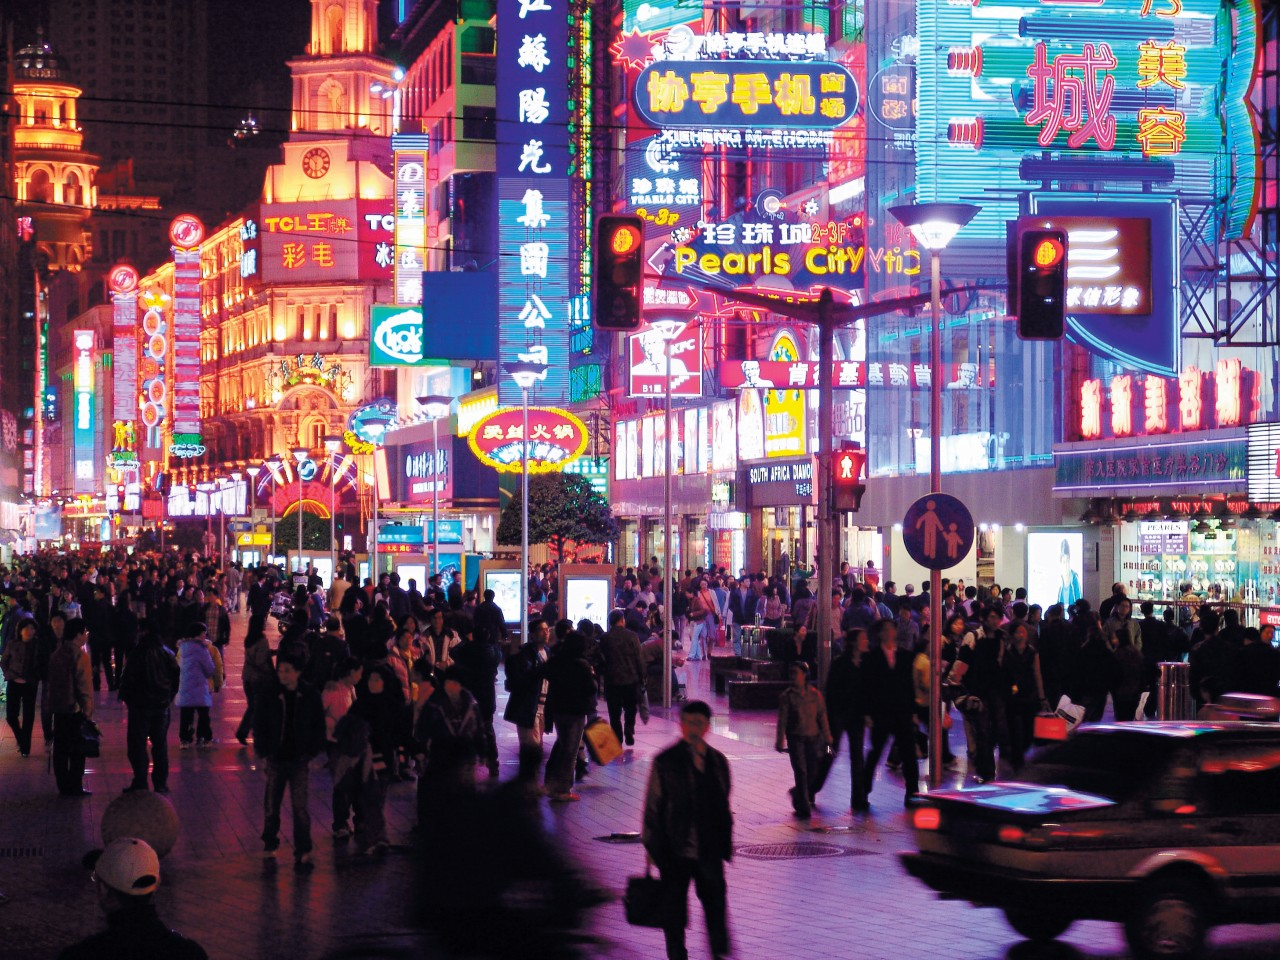 Nanjing Street is bursting with colorful light signs from dusk.